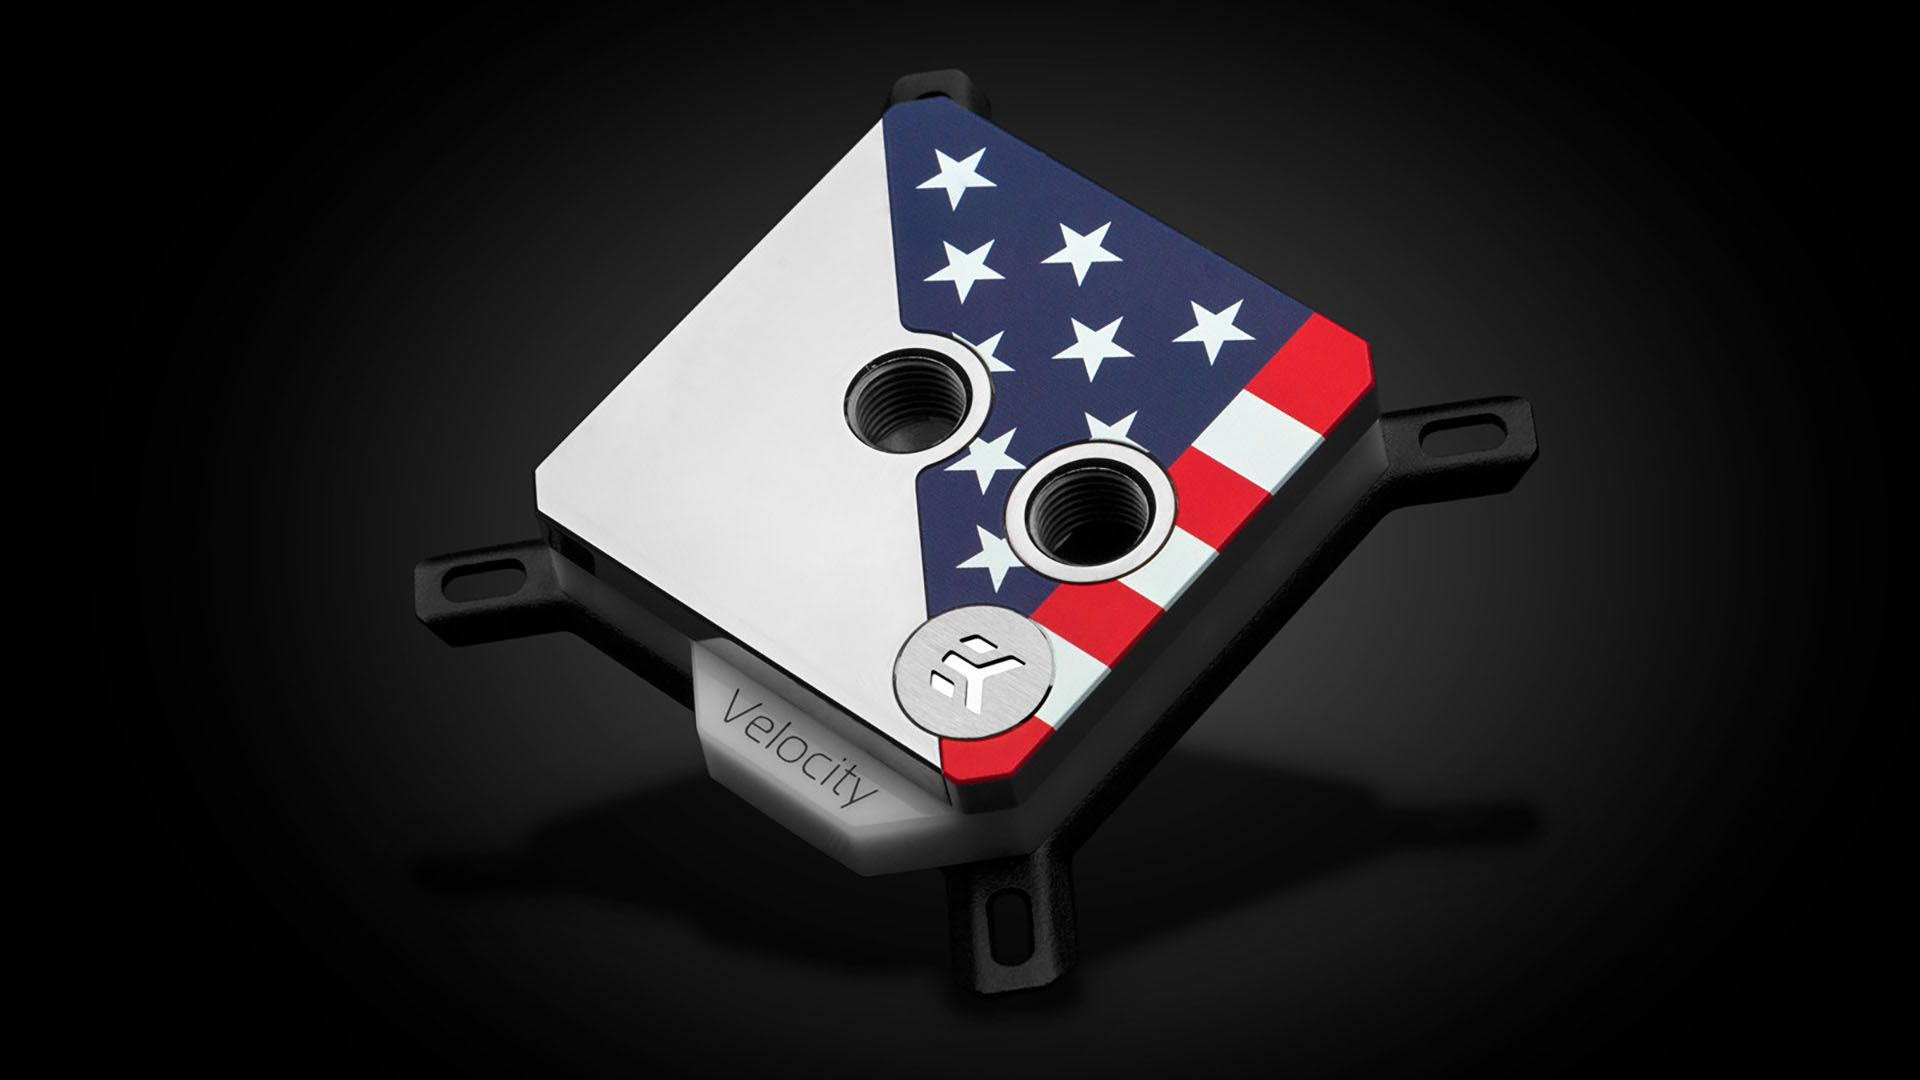 EKWB announces star-spangled CPU water block in support of disabled vets